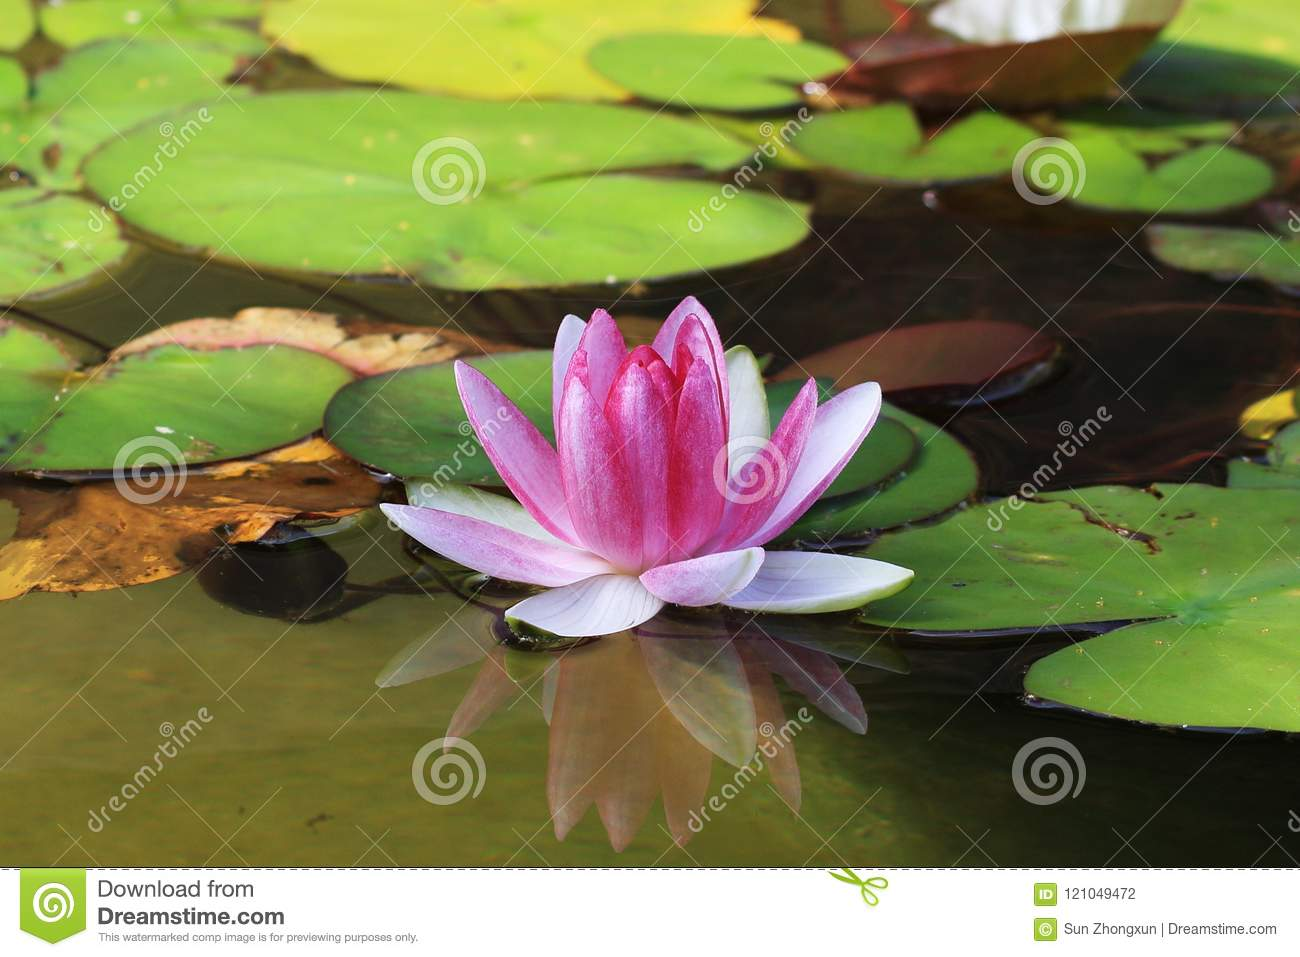 Water lilynymphaea l stock photo image of pure year 121049472 n rubra native to india and bangladesh water lily is the birth flower on august 5 every year flower language clean pure and glamorous izmirmasajfo